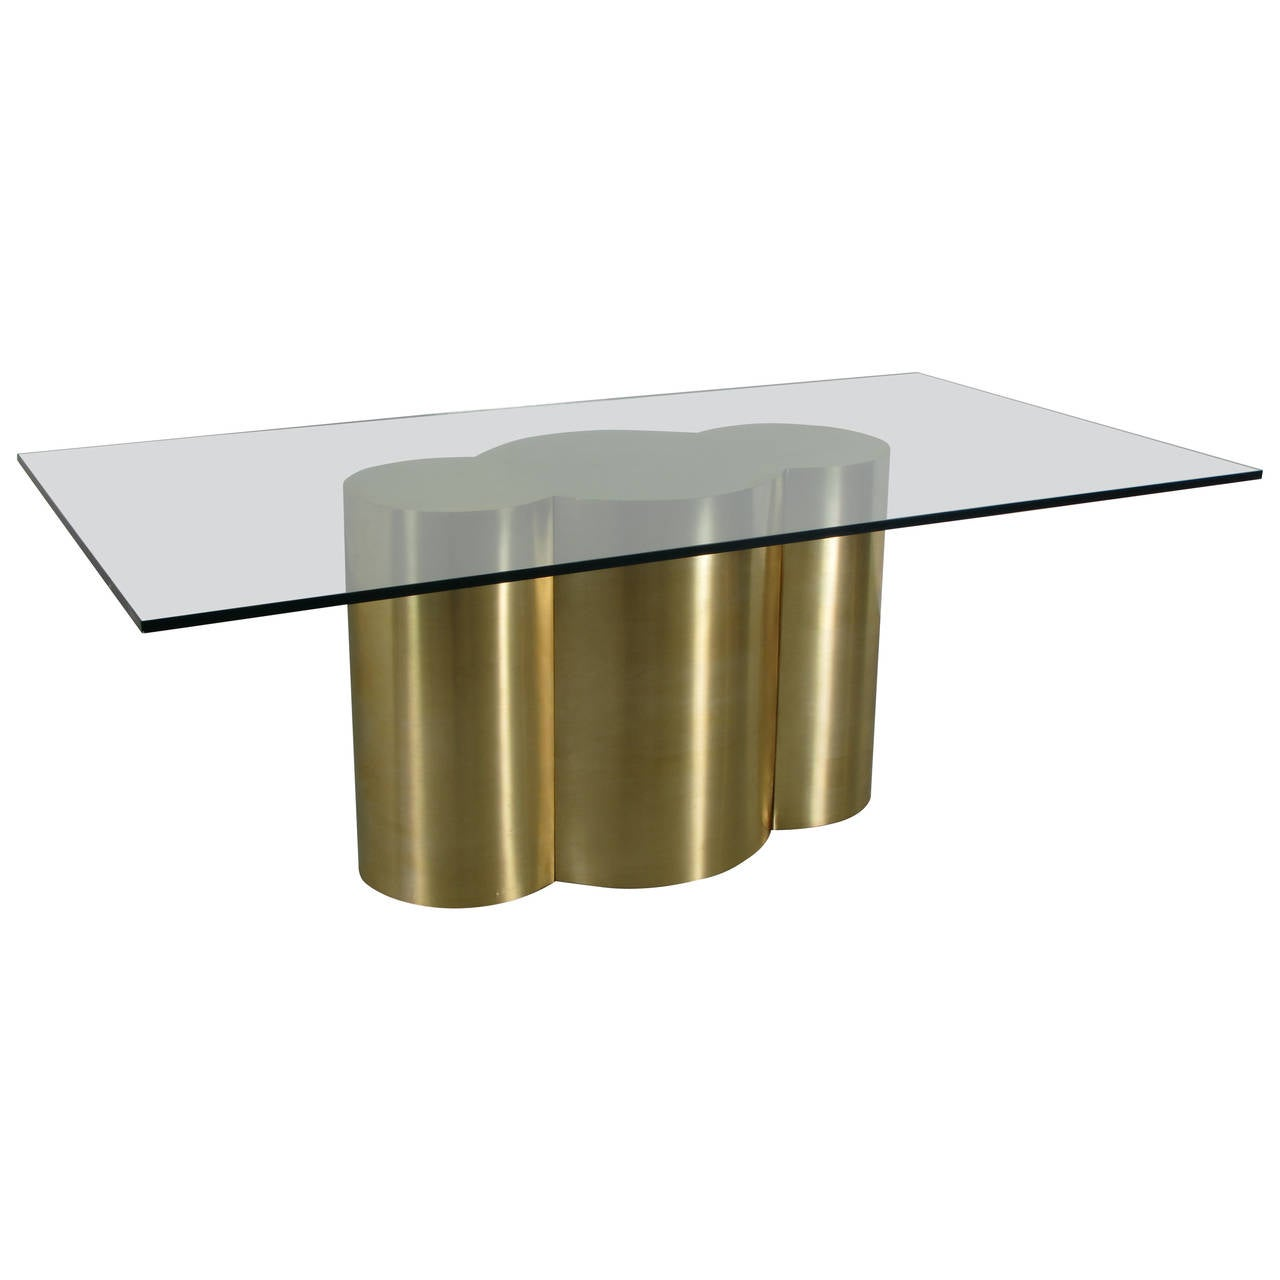 Custom Quatrefoil Dining Table Base In Polished Brass By Refine Limited At 1stdibs